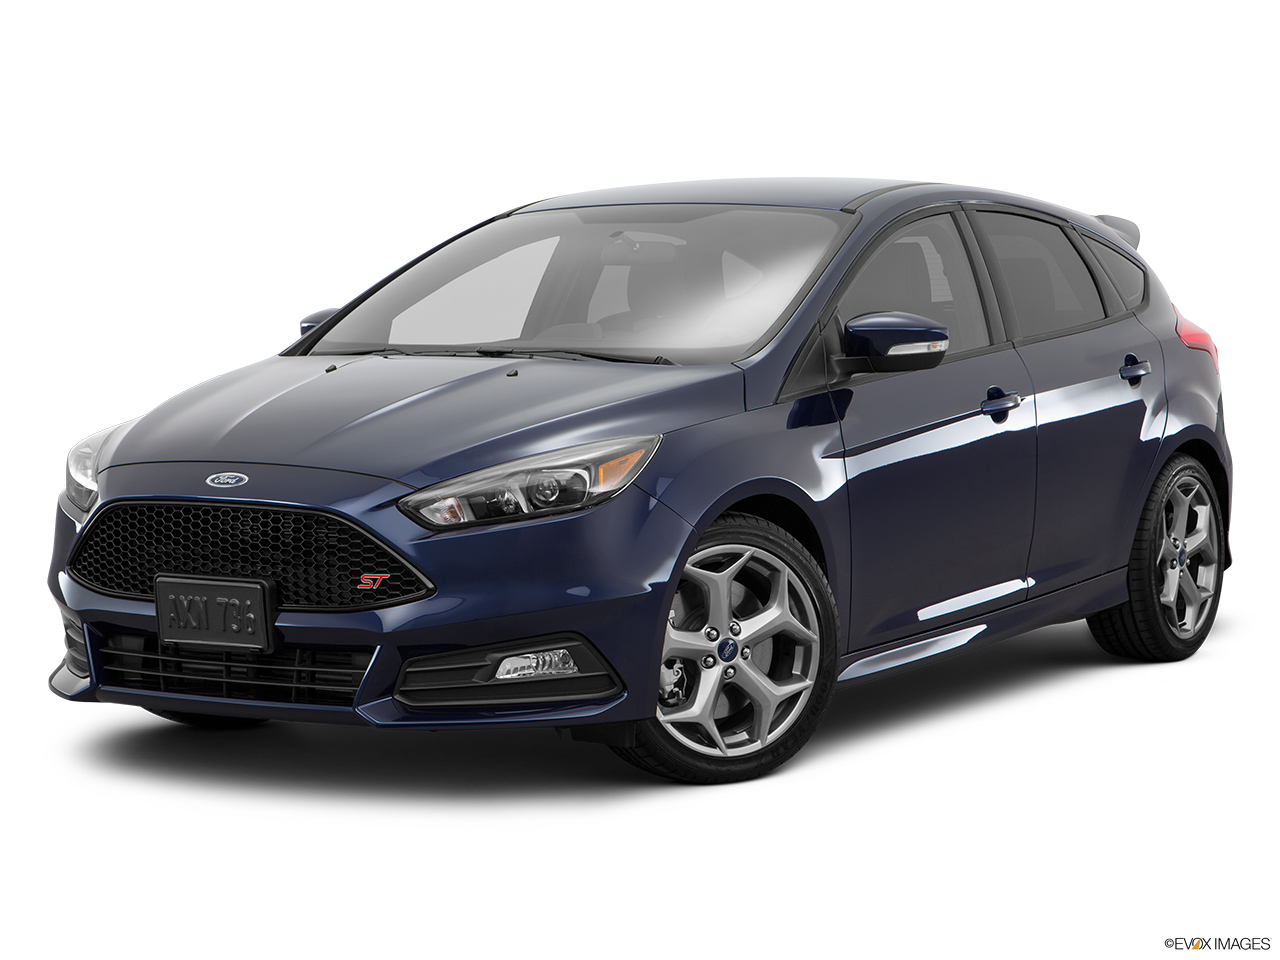 car pictures list for ford focus 2016 2 0l st uae. Black Bedroom Furniture Sets. Home Design Ideas